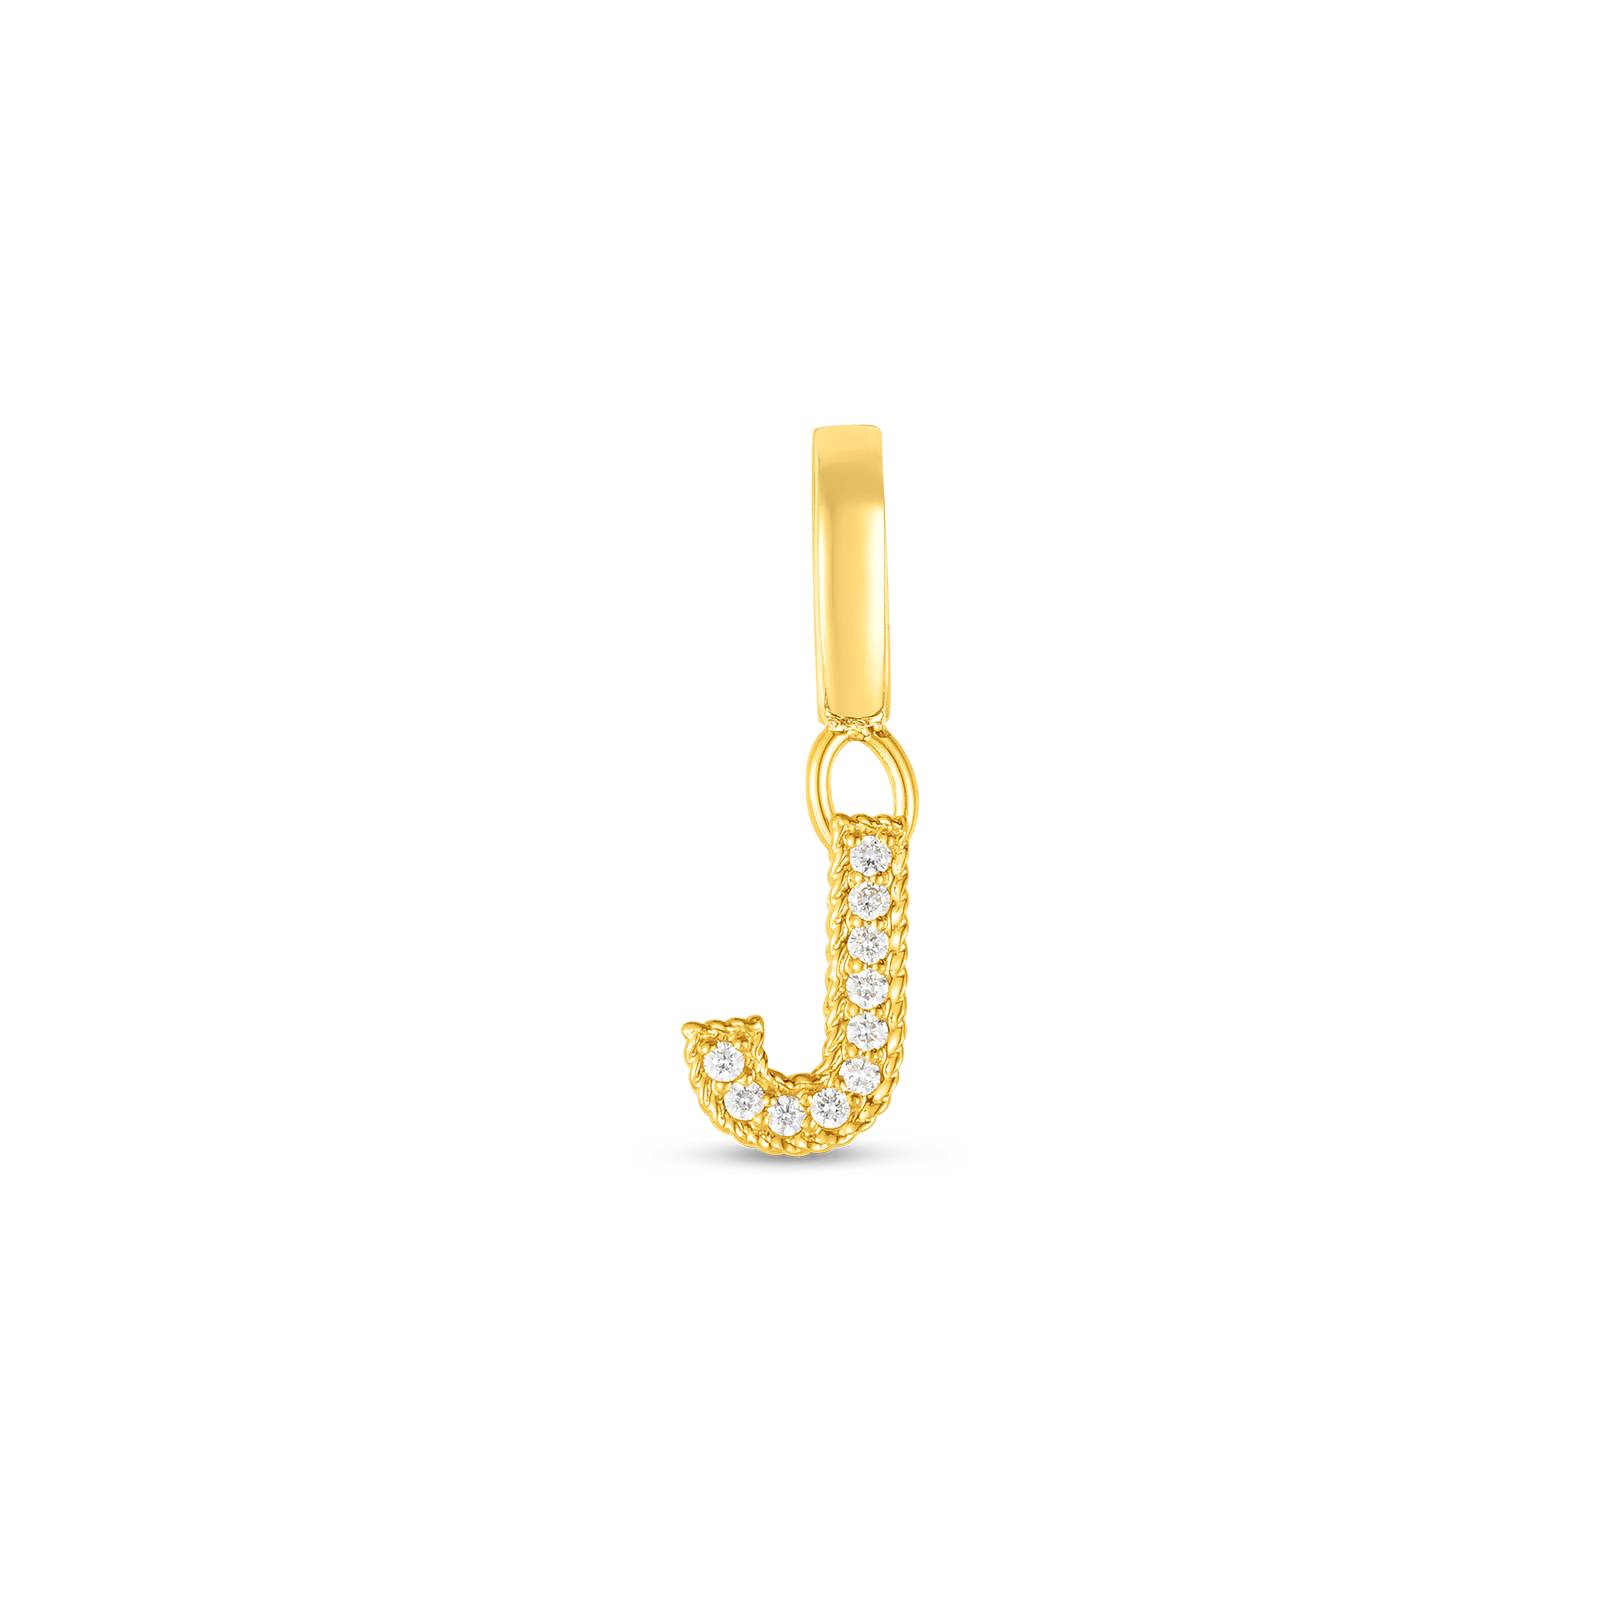 18k Gold & Diamond Princess Letter 'J' Charm